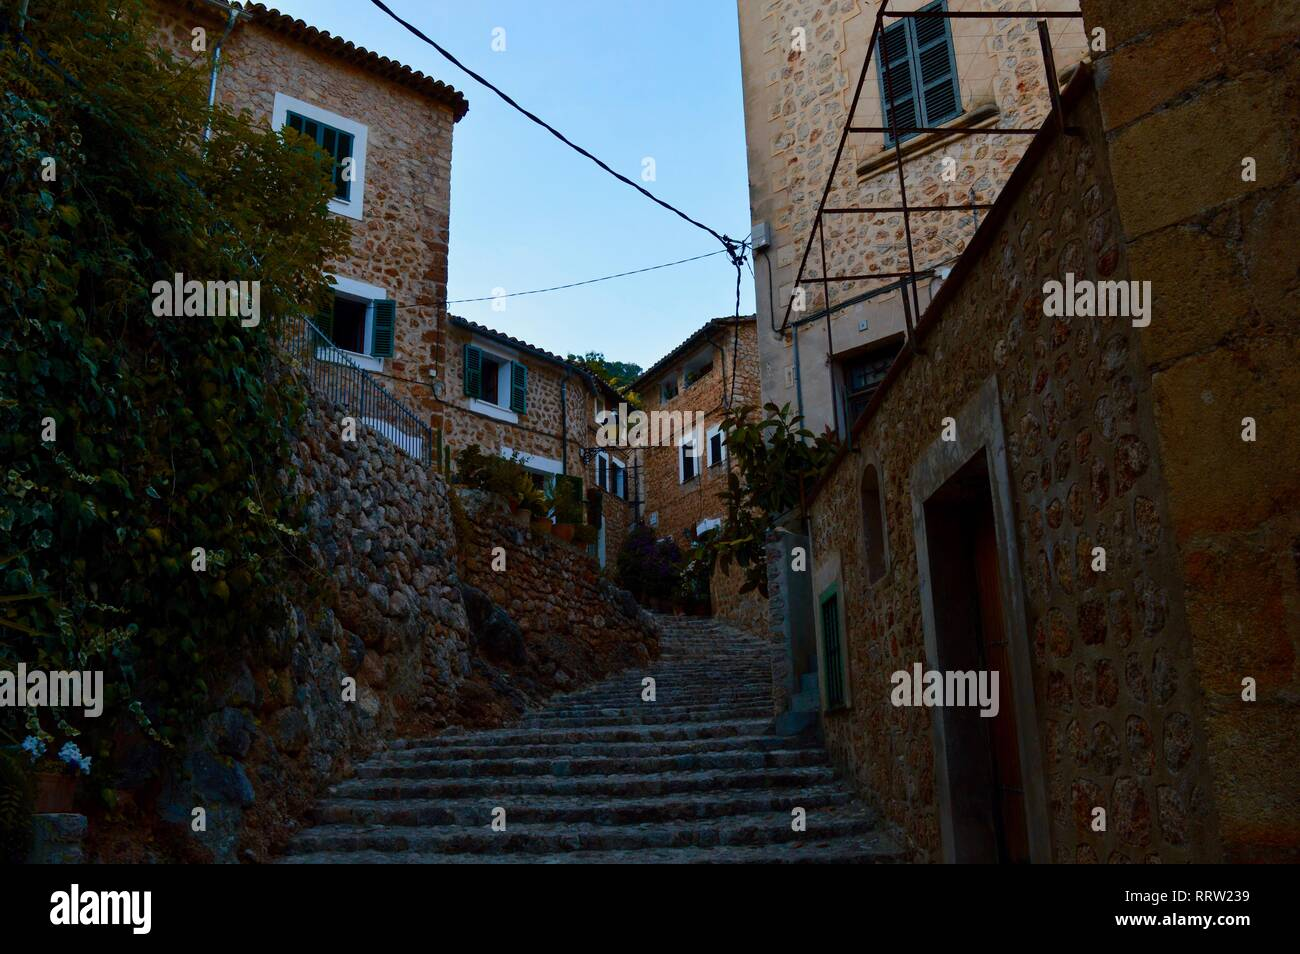 idyllic stairway at the mediterranean Palma de Mallorca outside at summertime with houses, plants, a blue sky and windows - Stock Image